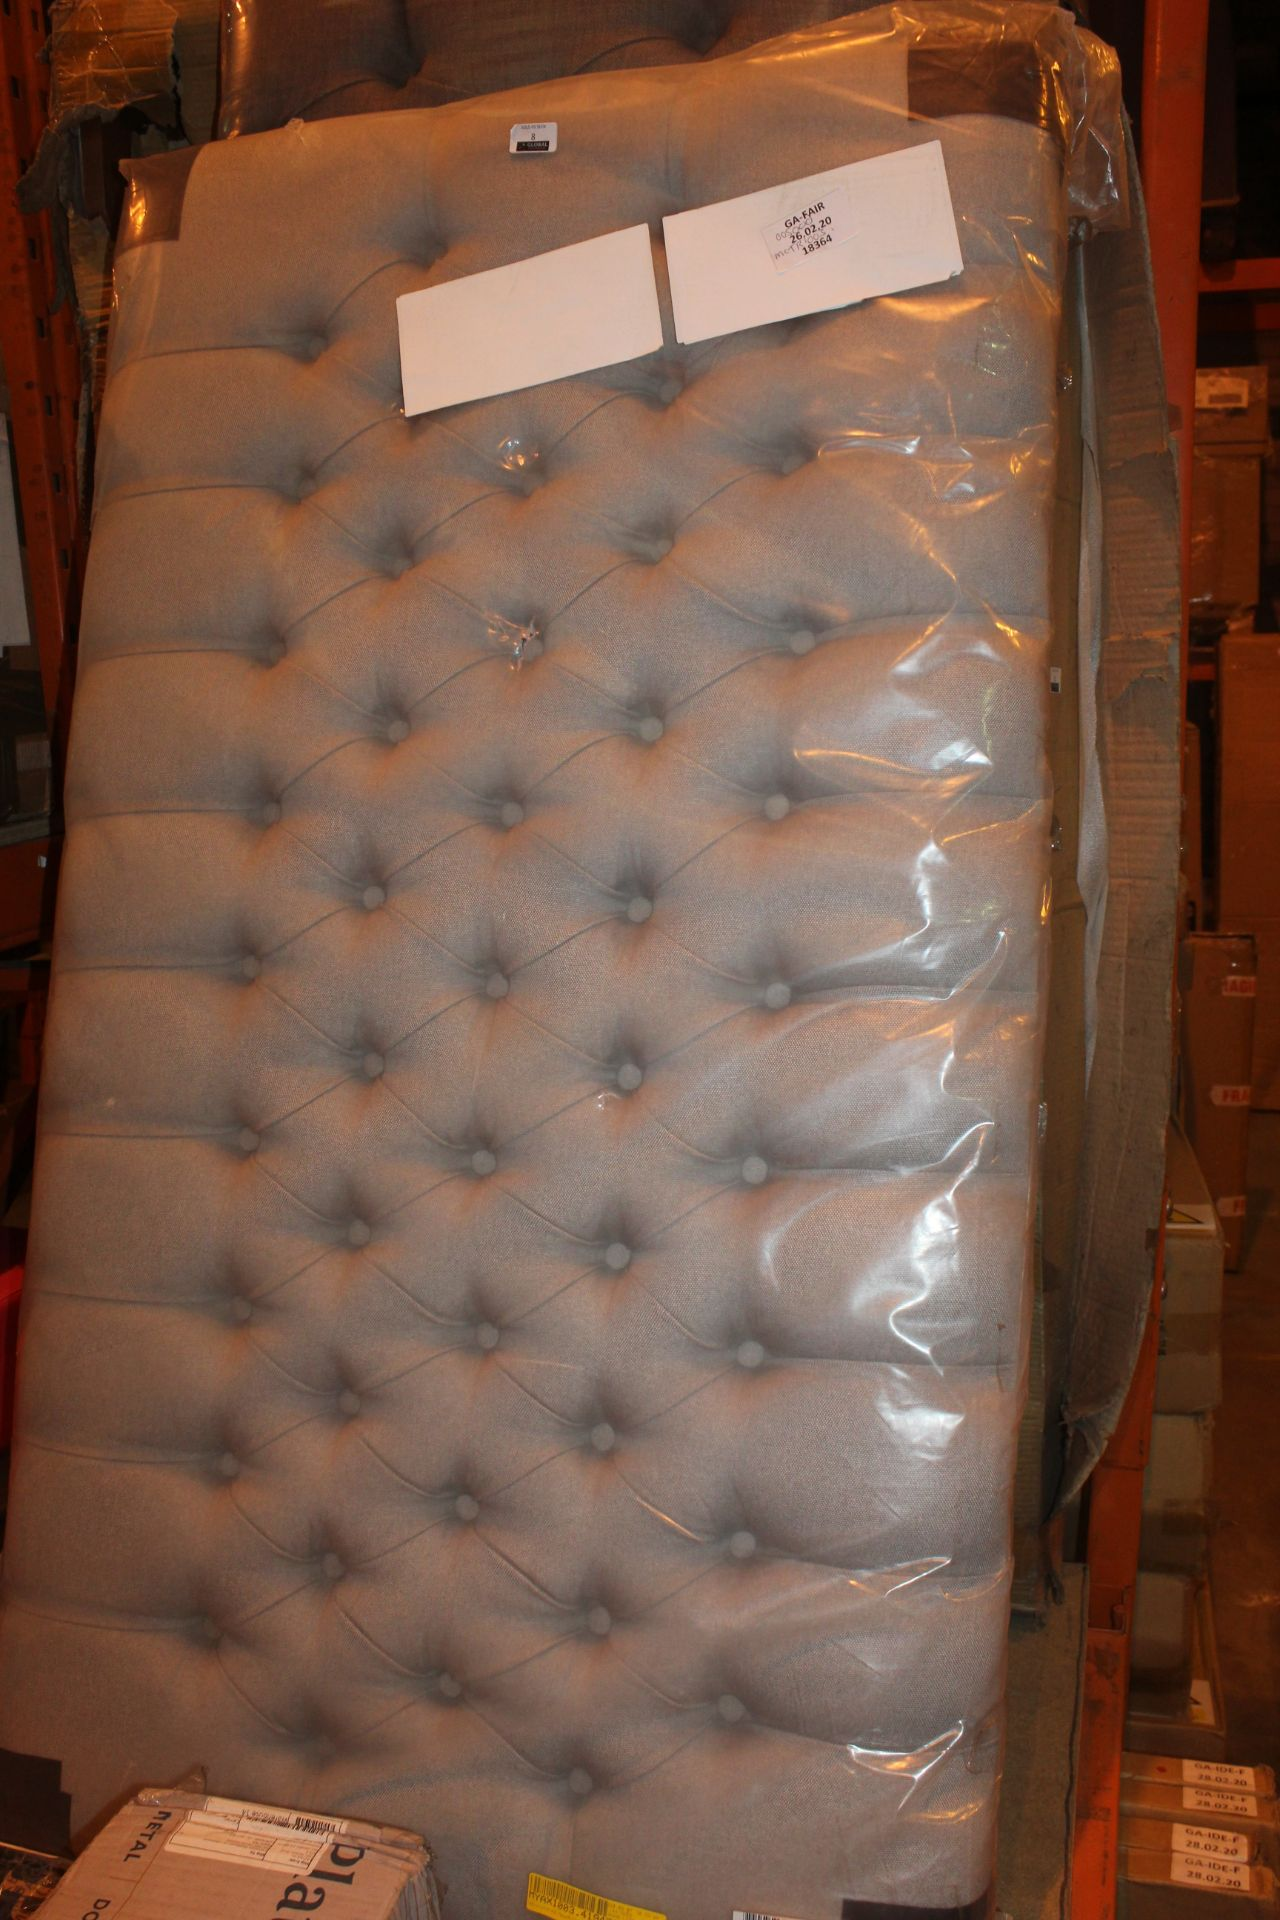 Lot 8 - Grey Double Designer Headboard RRP £50. IMAGES ARE FOR ILLUSTRATION PURPOSES ONLY AND MAY NOT BE